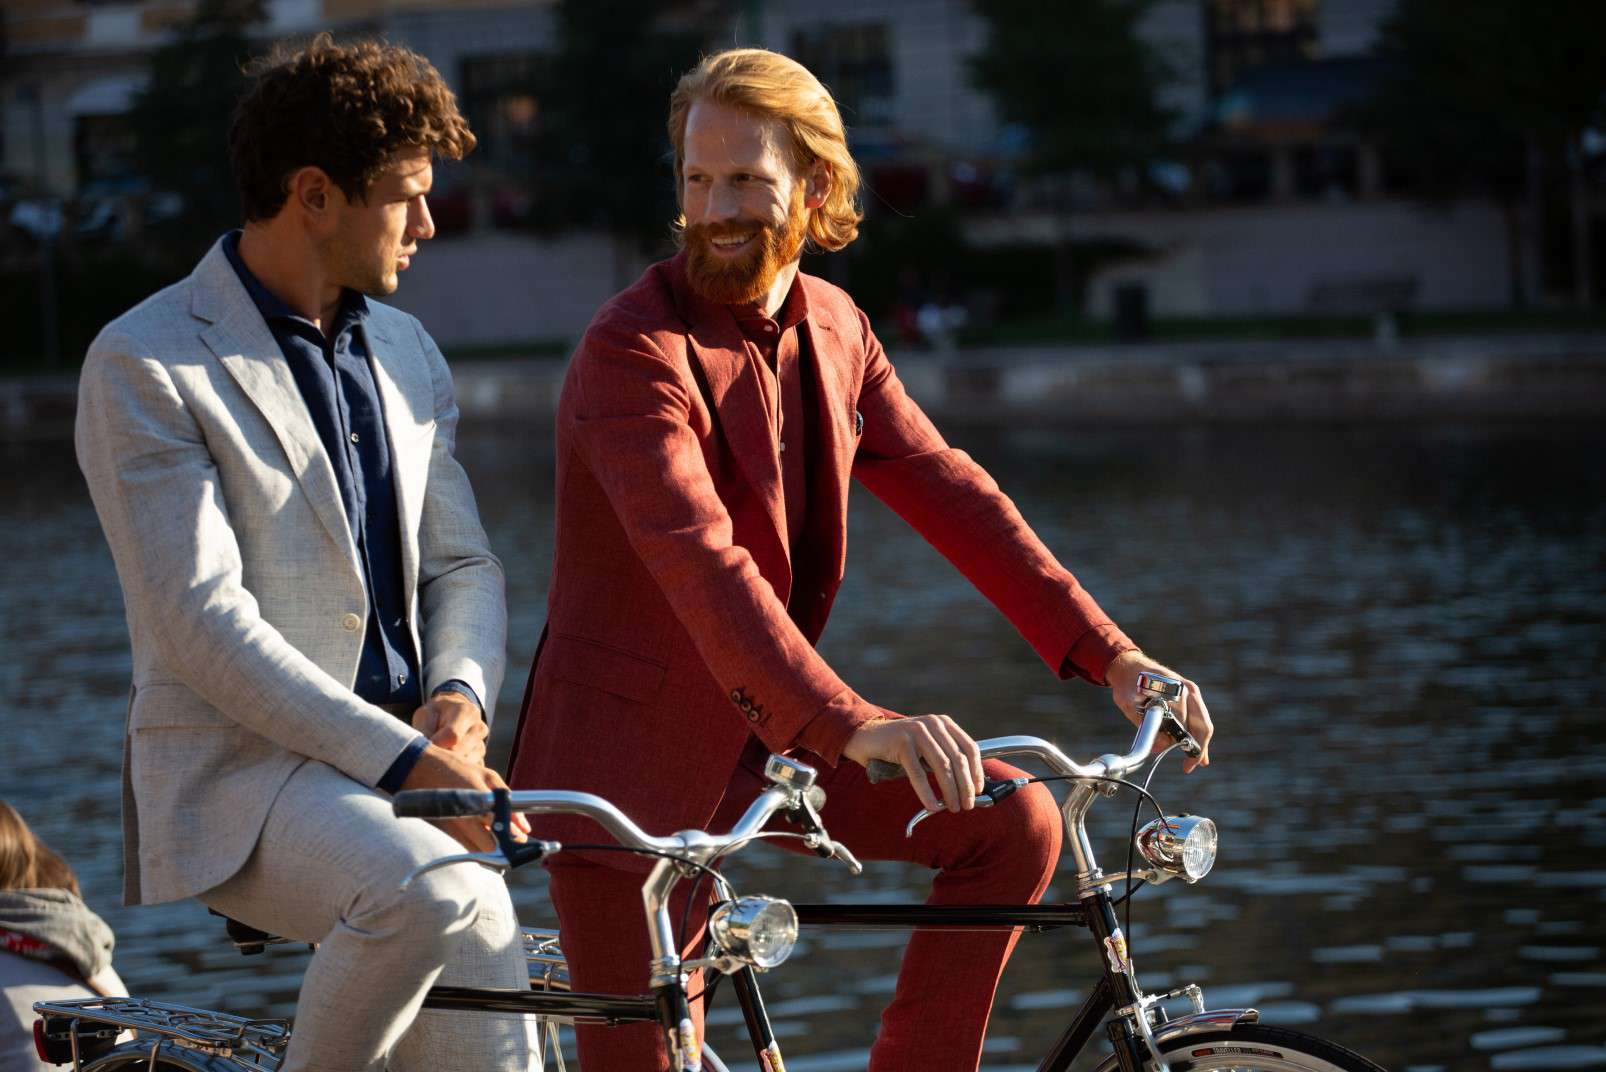 Boggi Milano Linen suits with open-collar shirt